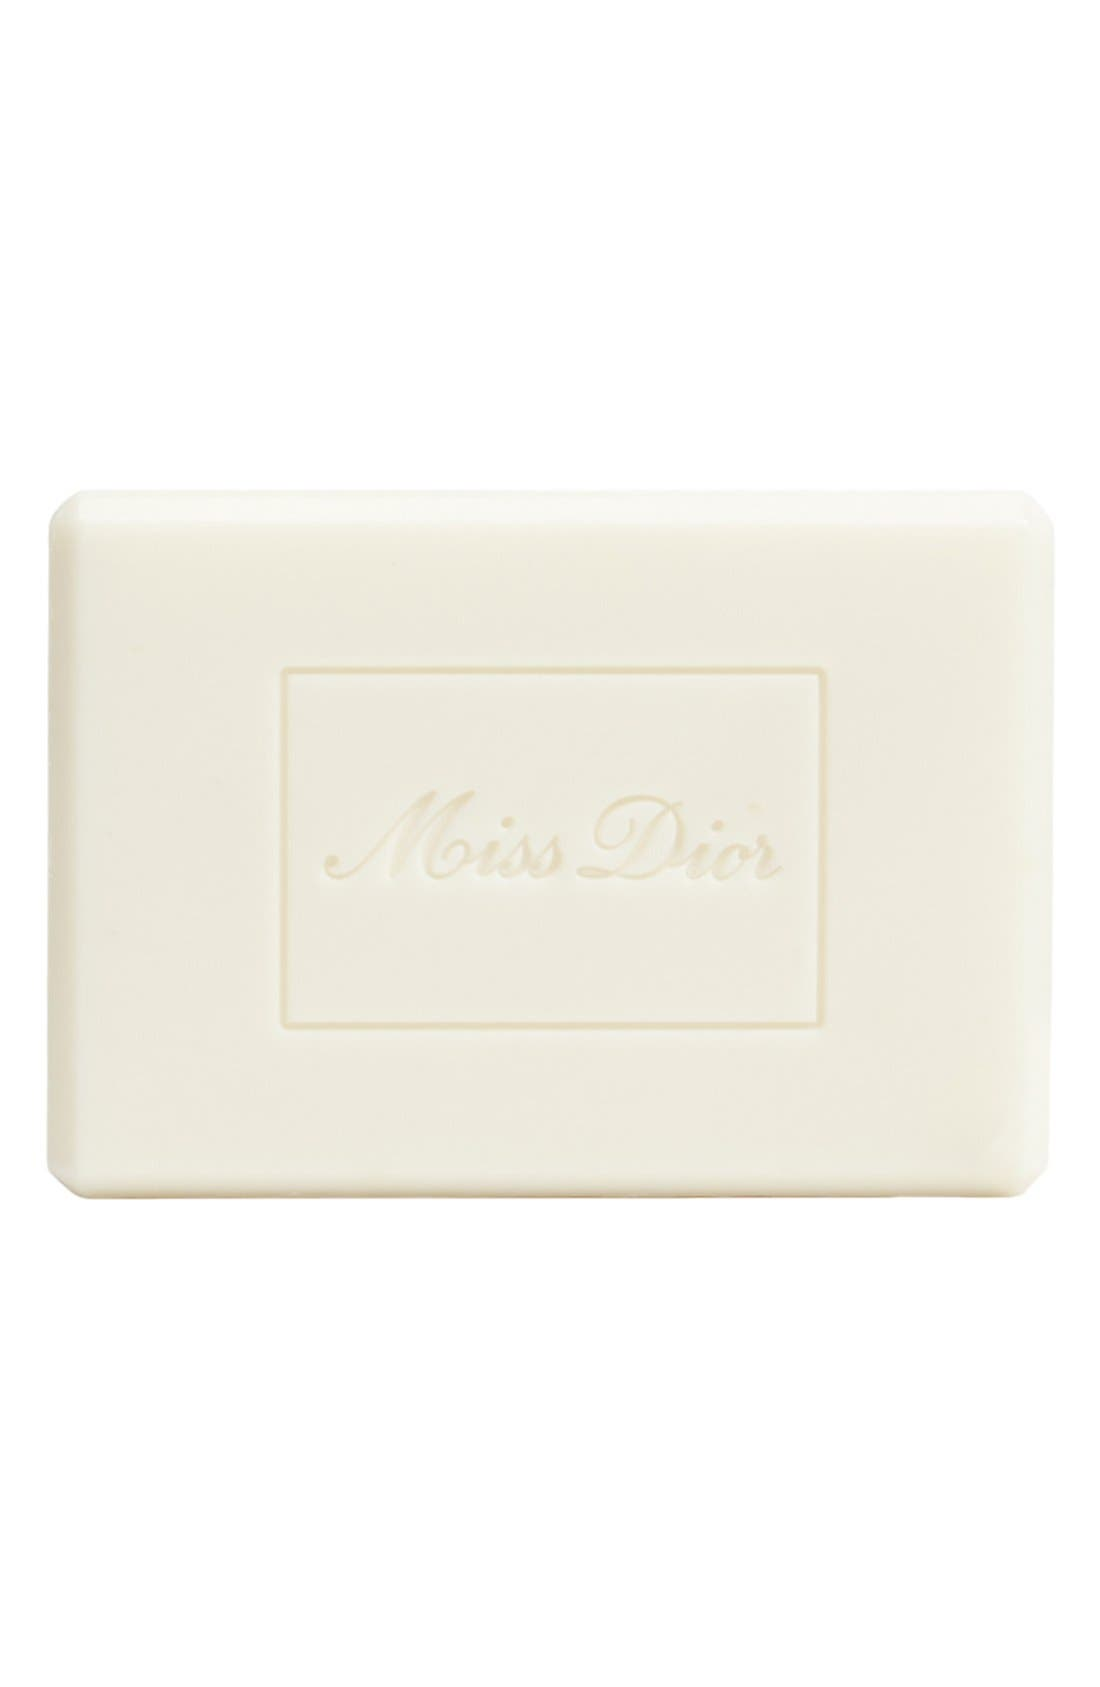 Dior 'Miss Dior' Silky Soap